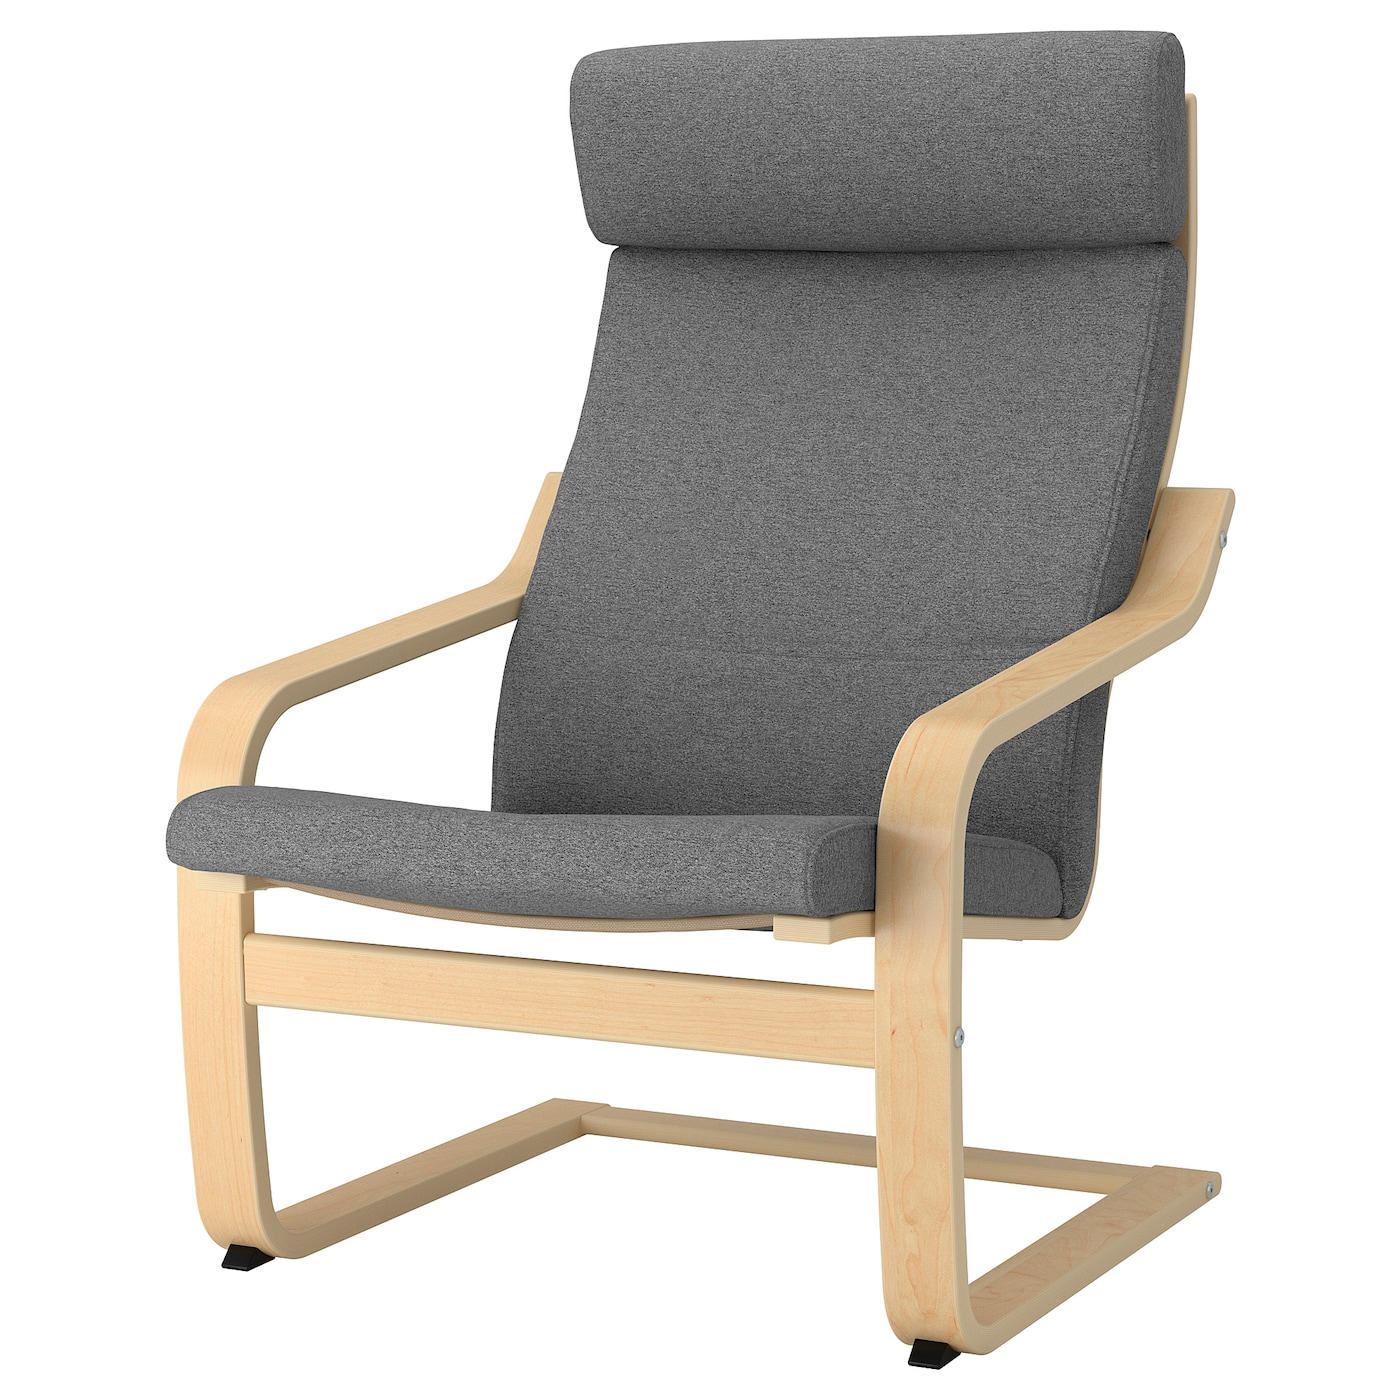 poaeng-armchair-birch-veneer-lysed-gray_